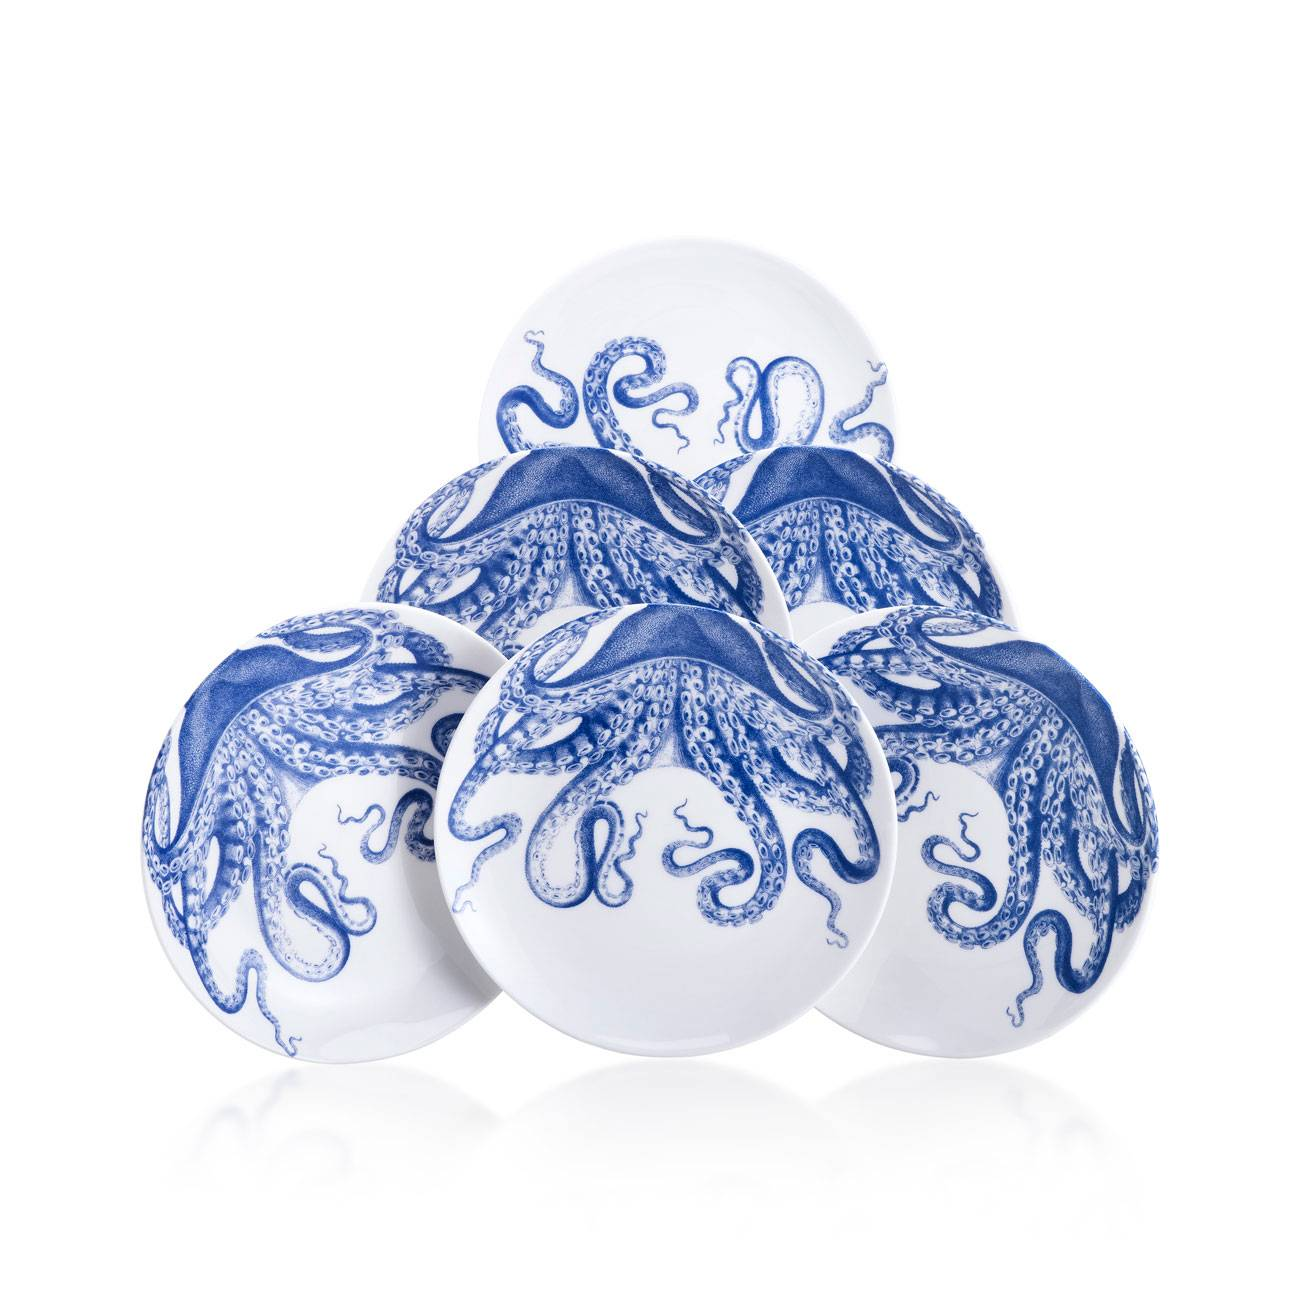 Caskata blue lucy canape plates set of 6 michael c fina for Where can i buy canape cups